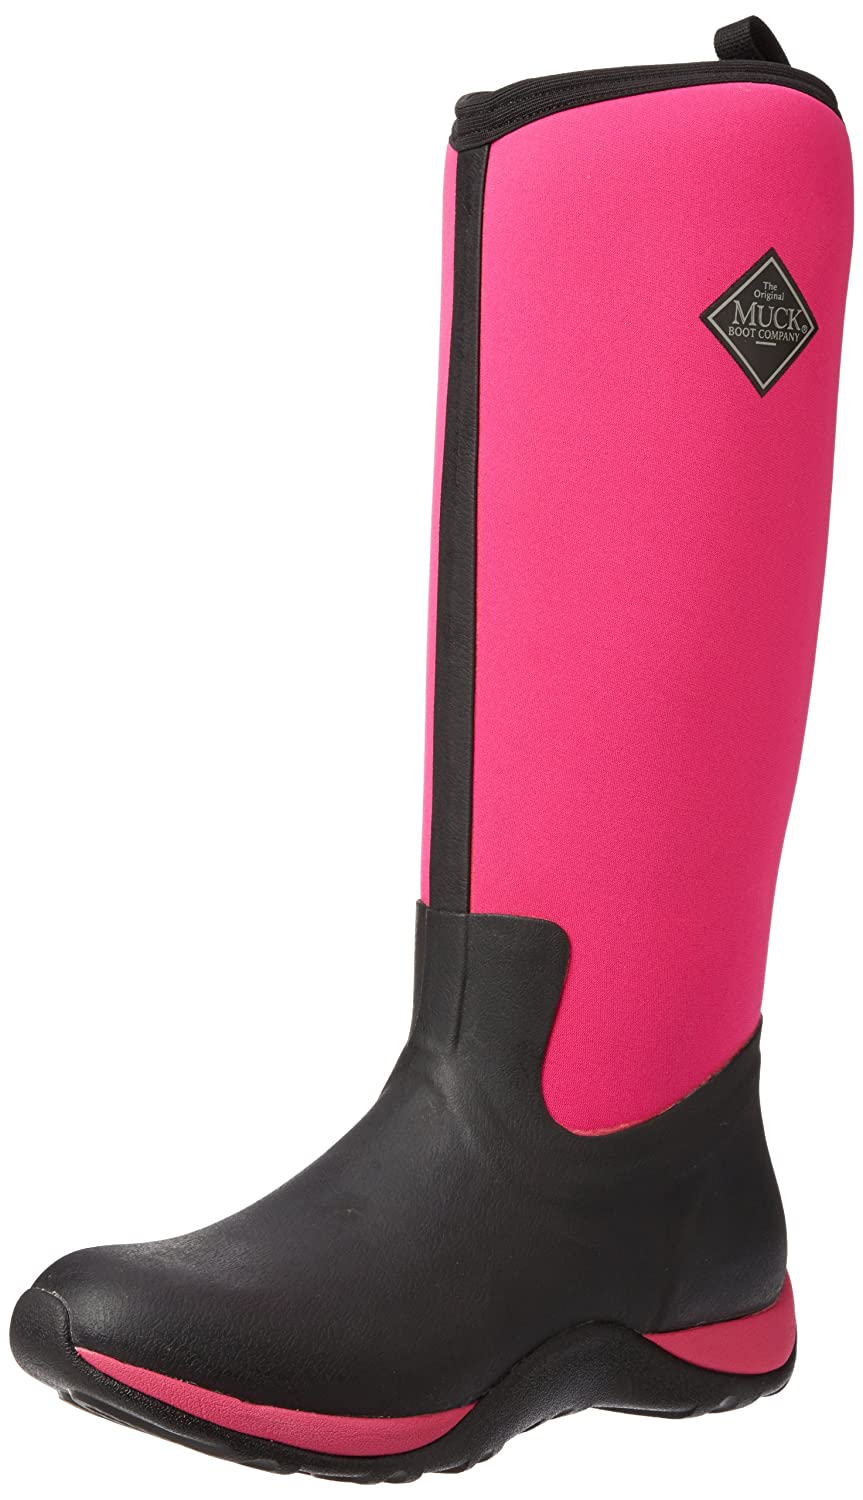 [Muck Boot] レディース Black/Hot Arctic Adventure B00BN6138S Pink 9 レディース B(M) US|Black/Hot Pink Black/Hot Pink 9 B(M) US, 厨房1番:5220ed17 --- sharoshka.org